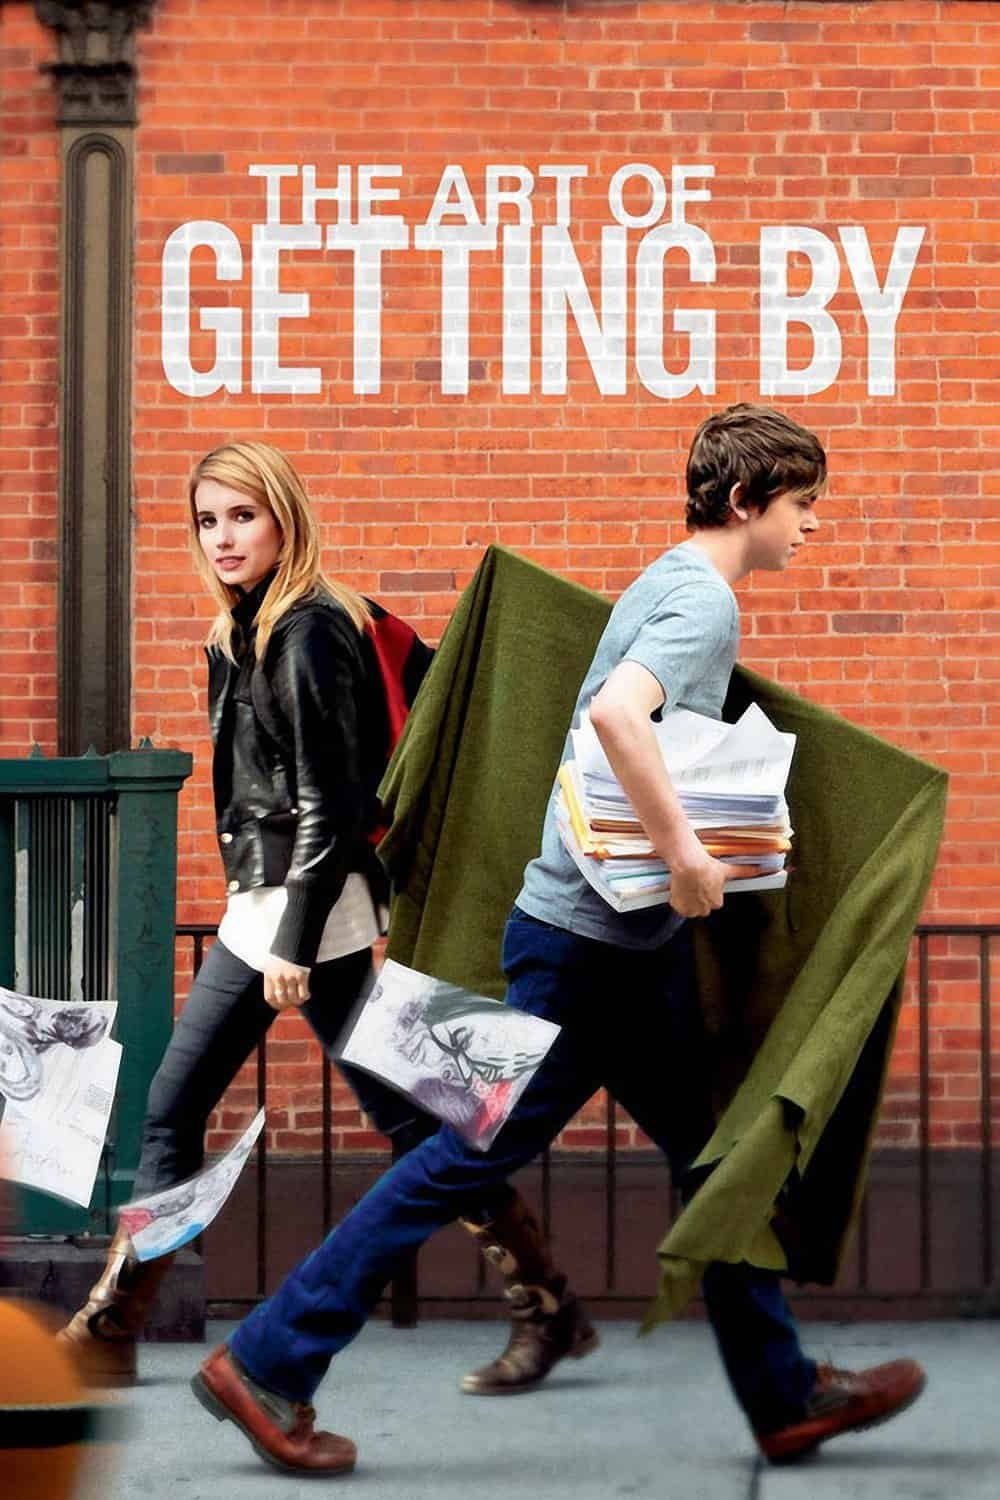 The Art of Getting By, 2011